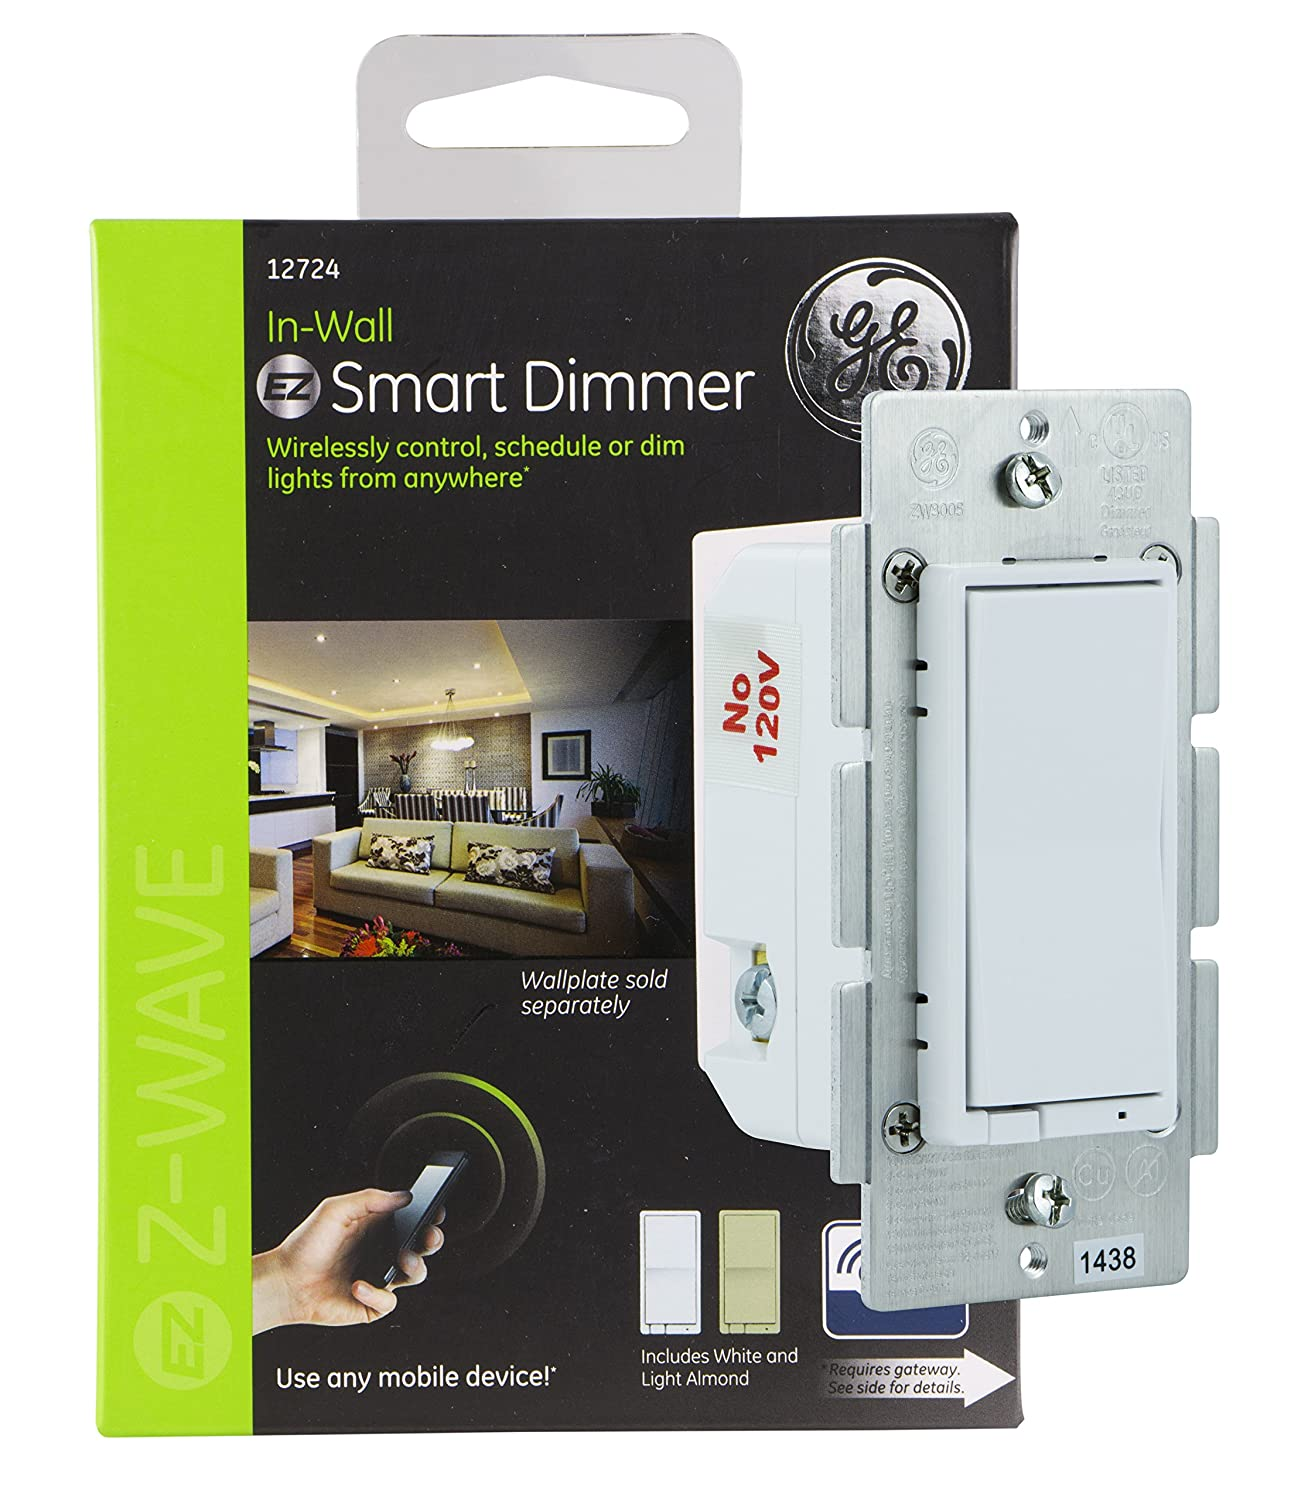 GE Z-Wave Wireless Smart Lighting Control Smart Dimmer, In-Wall, Includes White & Light Almond Paddles, 12724, Works with Alexa